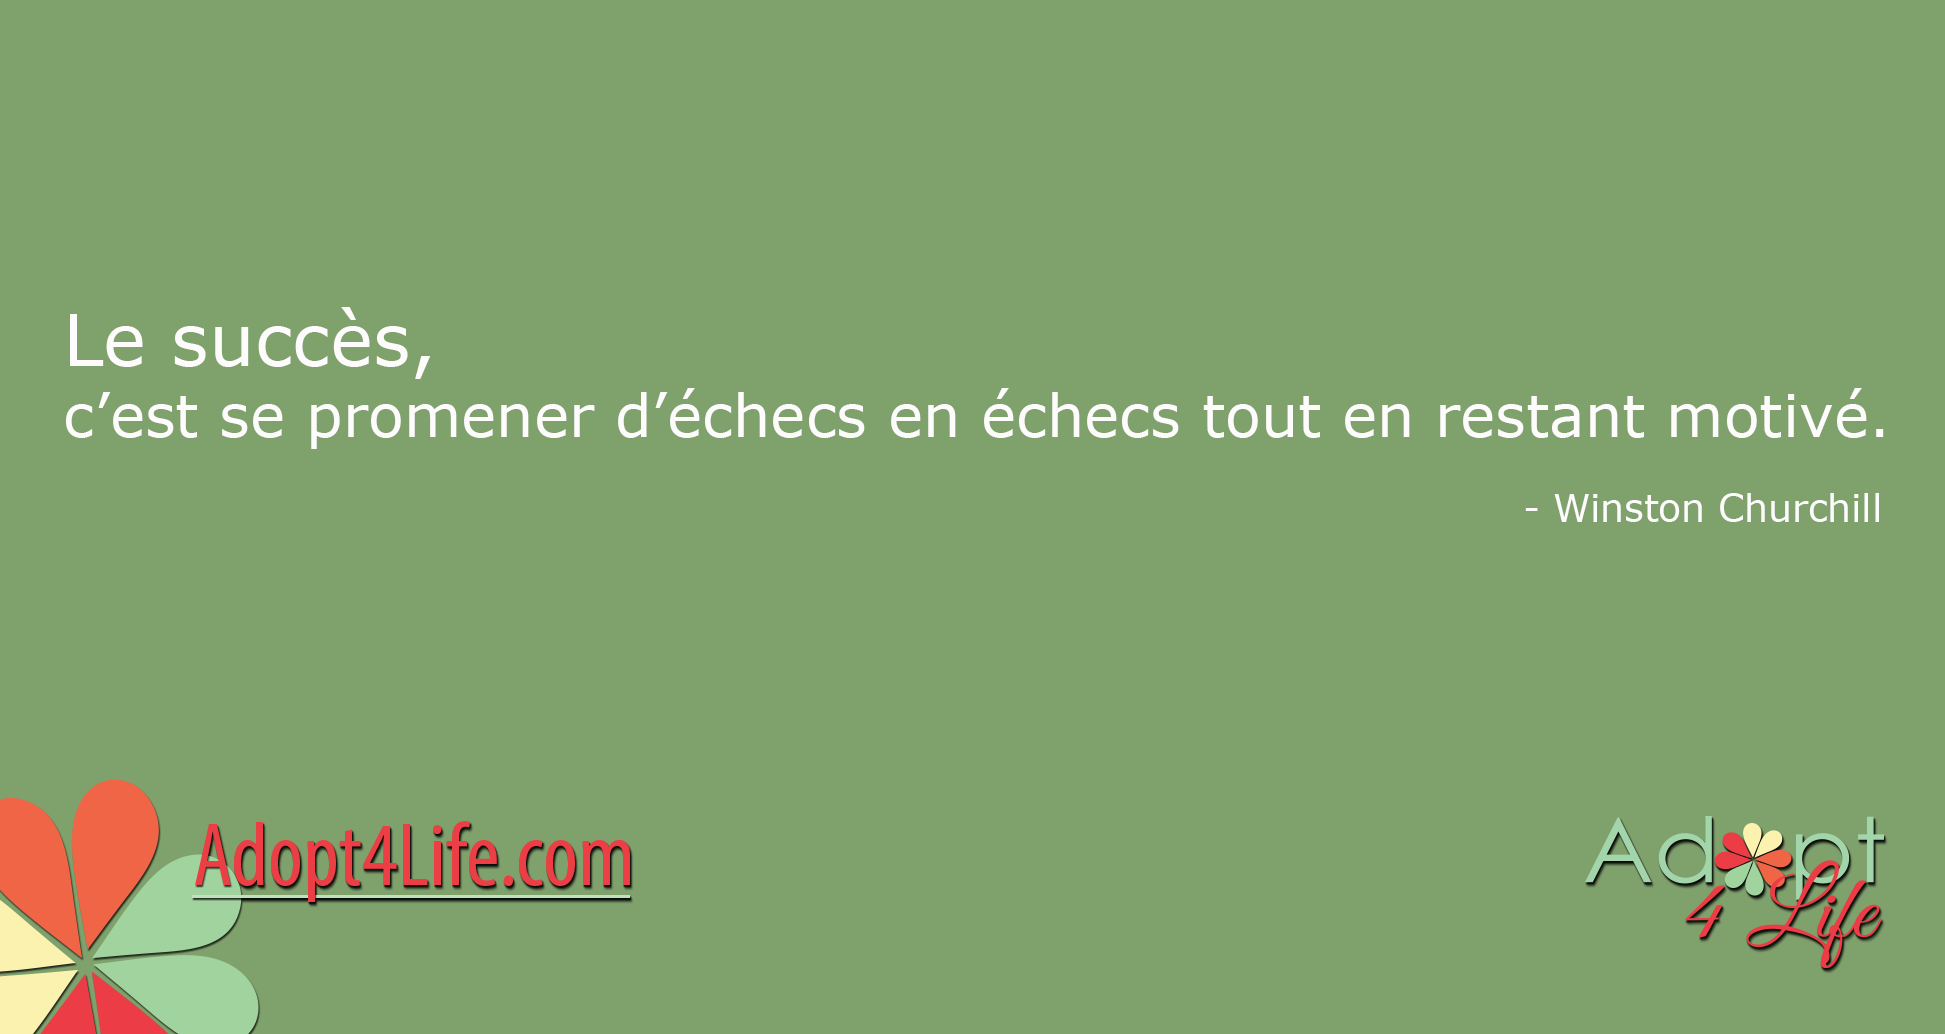 Facebook_AdoptionQuote_French_019_Dec2014_png.png